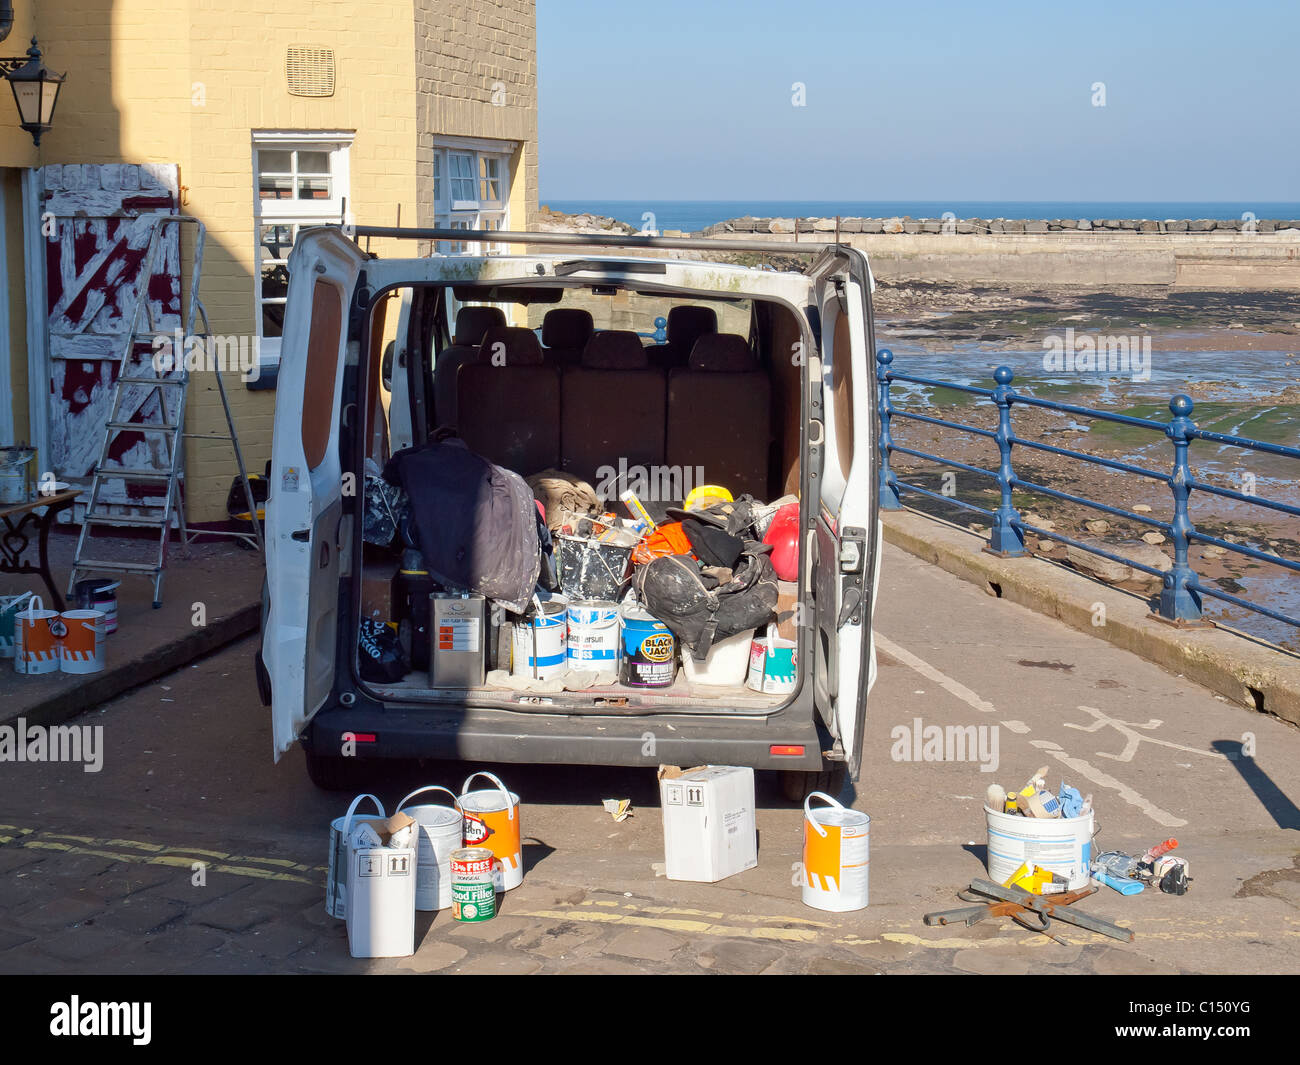 Painter and decorator's van with rear doors open and many paint tins exterior decoration of a seaside pub - Stock Image